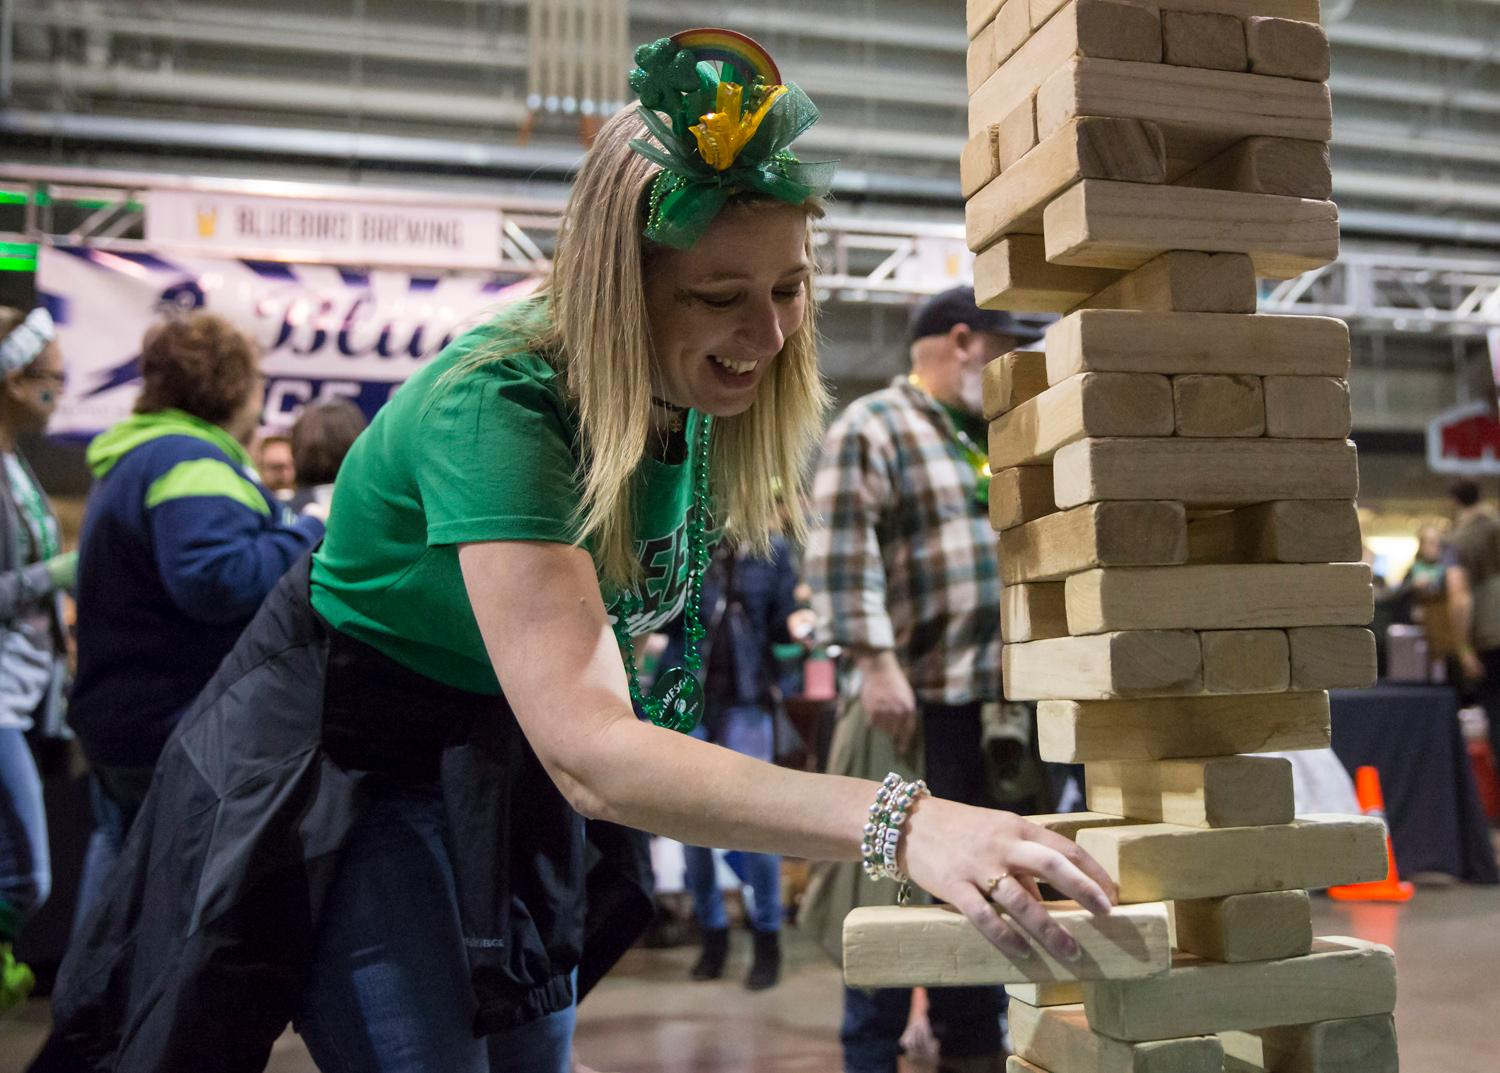 It's the party of the year - BACON, EGGs, & KEGS. 2,500 people crammed the west hall of CenturyLink Field to experience over 40 breweries, dozens of food vendors, and a 30-foot Bloody Mary bar. The event runs Saturday and Sunday, and there are still tickets left! (Seattle Refined)